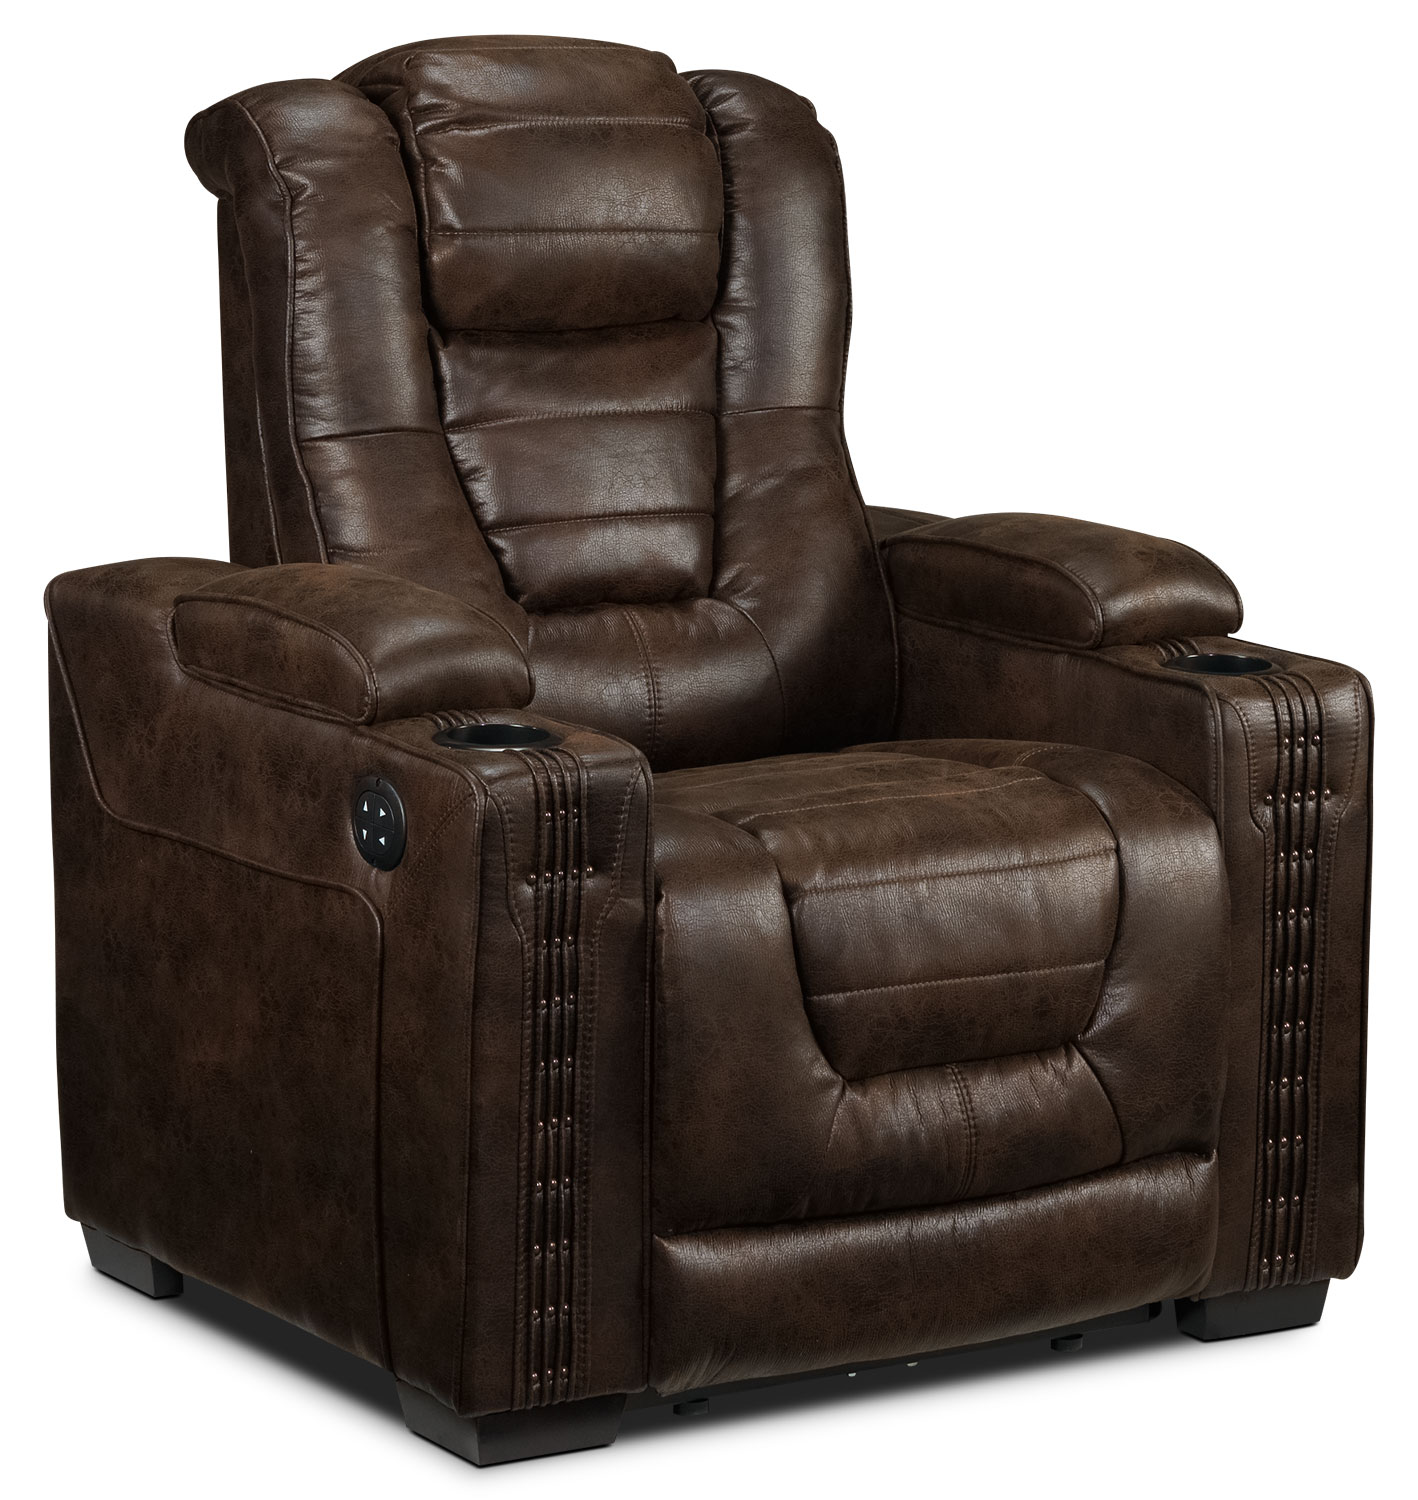 power recliner sofa canada protectors dakota reclining loveseat - walnut | leon's